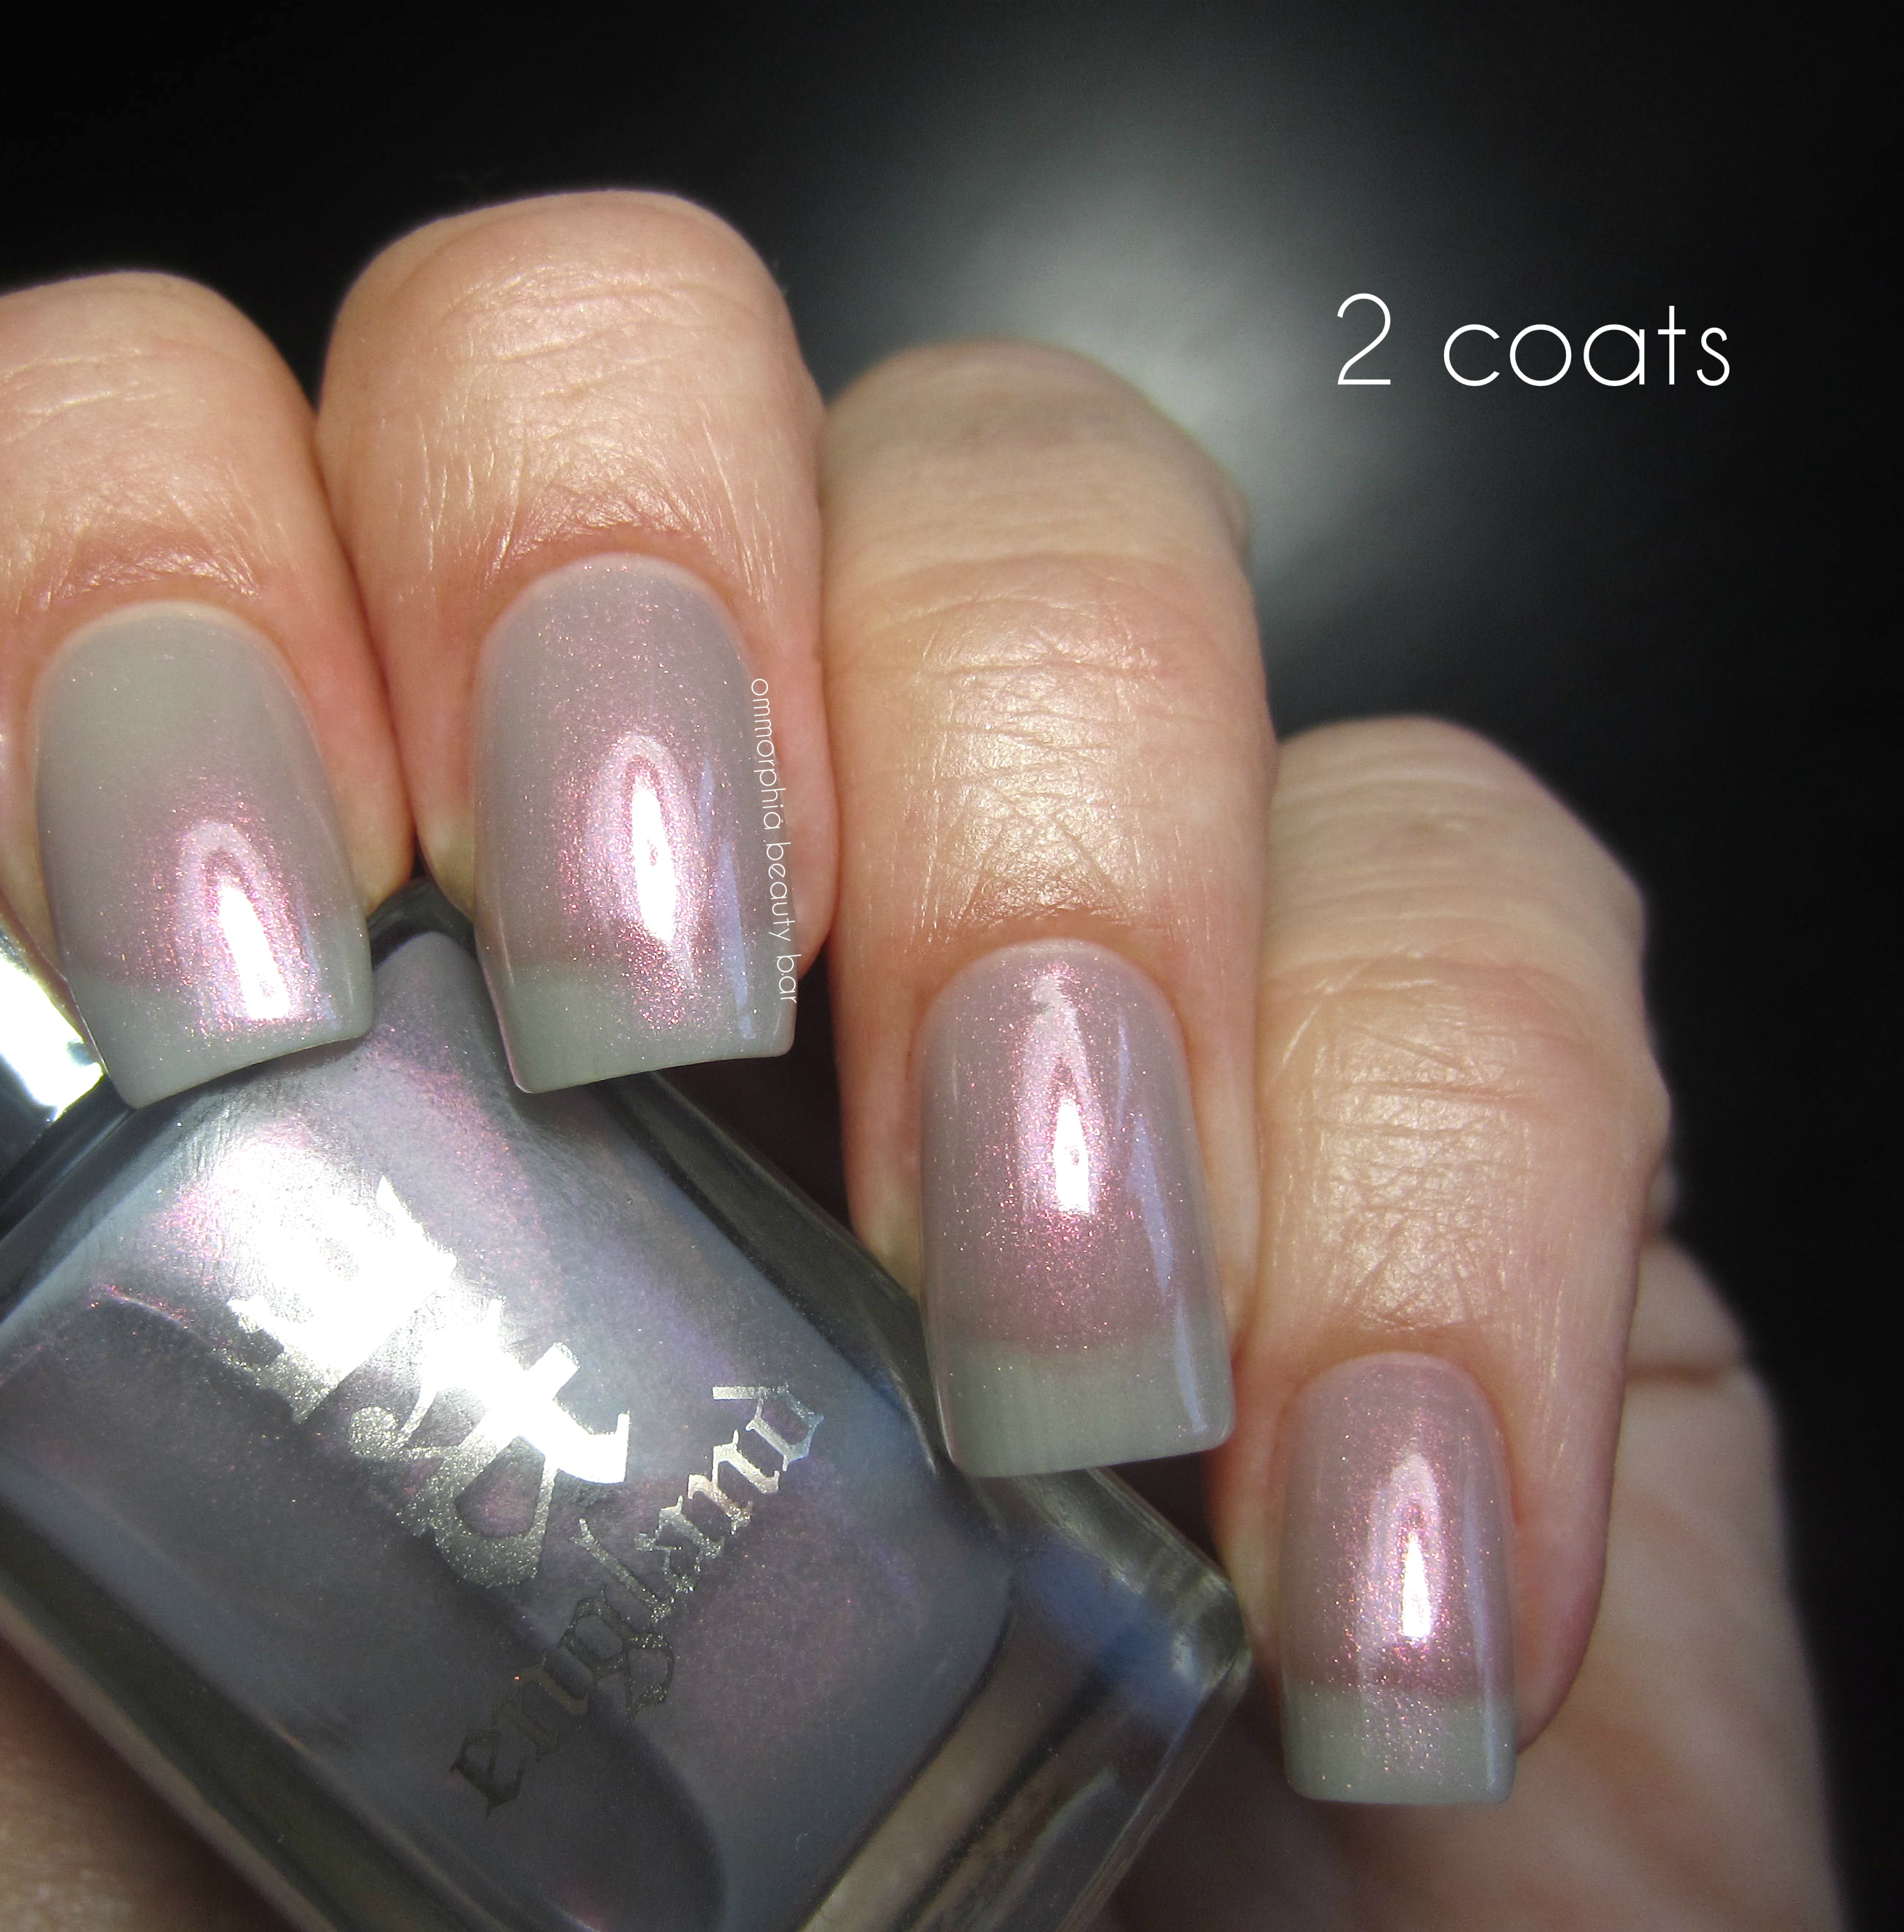 a-england Hurt No Living Thing 2 coats swatch